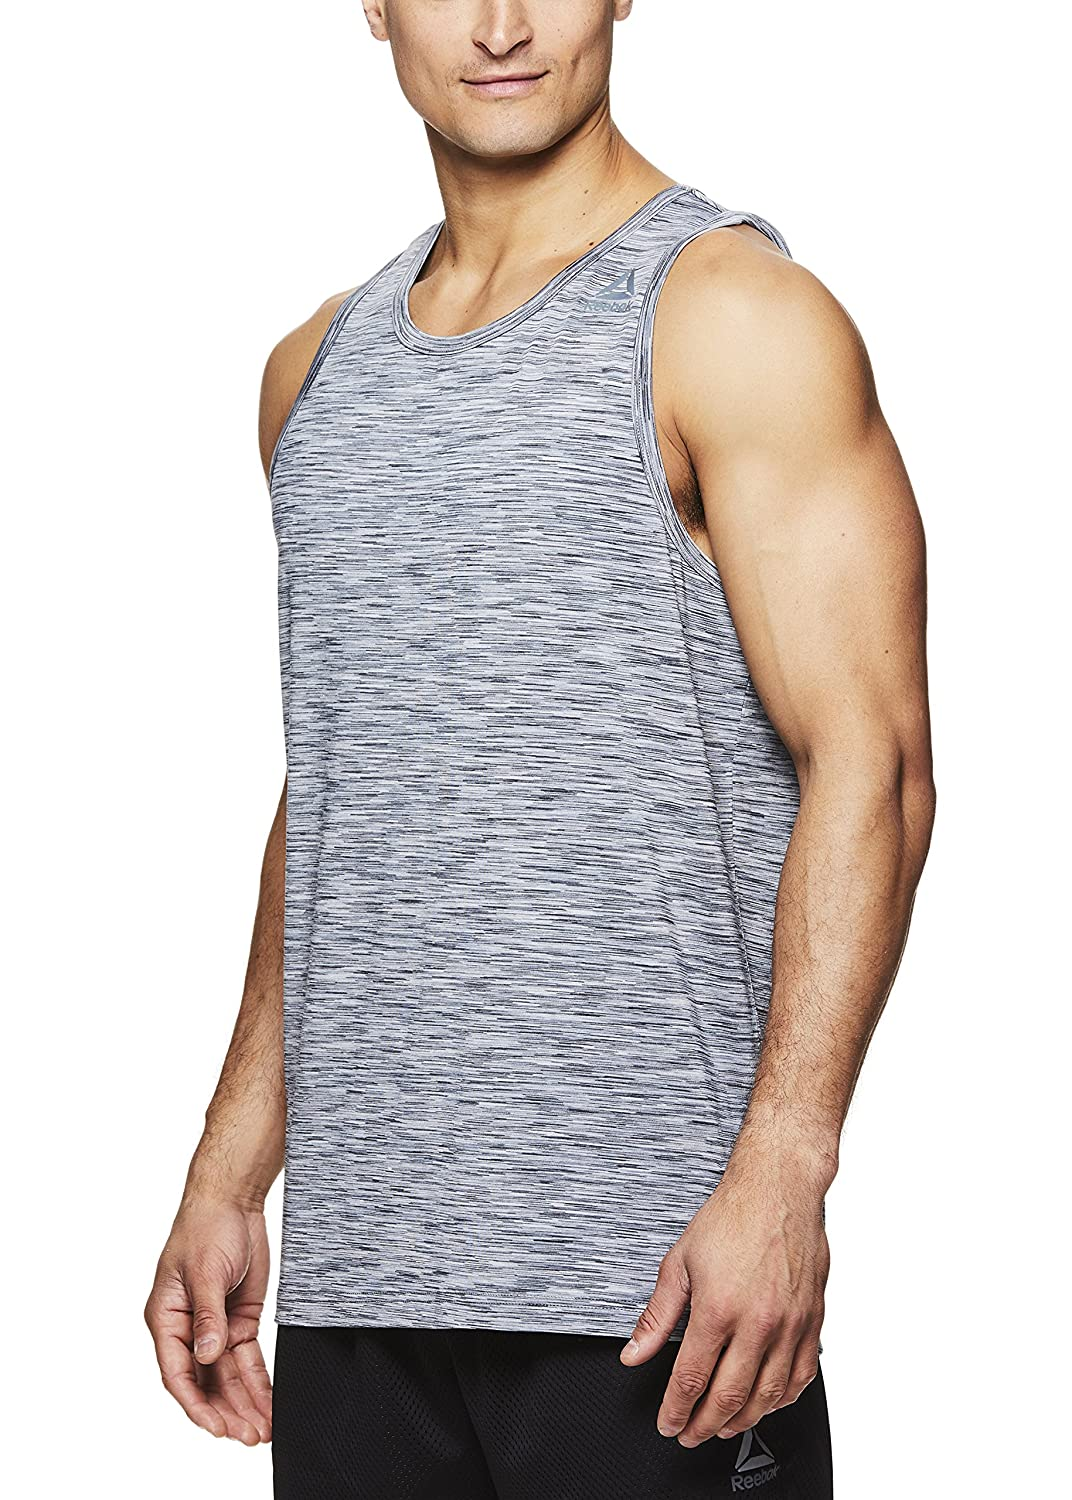 e6ad19e6673 PEAK PERFORMANCE: Reebok tanks set the new bar for men\'s gym shirts. Our  performance tank tops are perfect for any and all sports providing the  comfort and ...